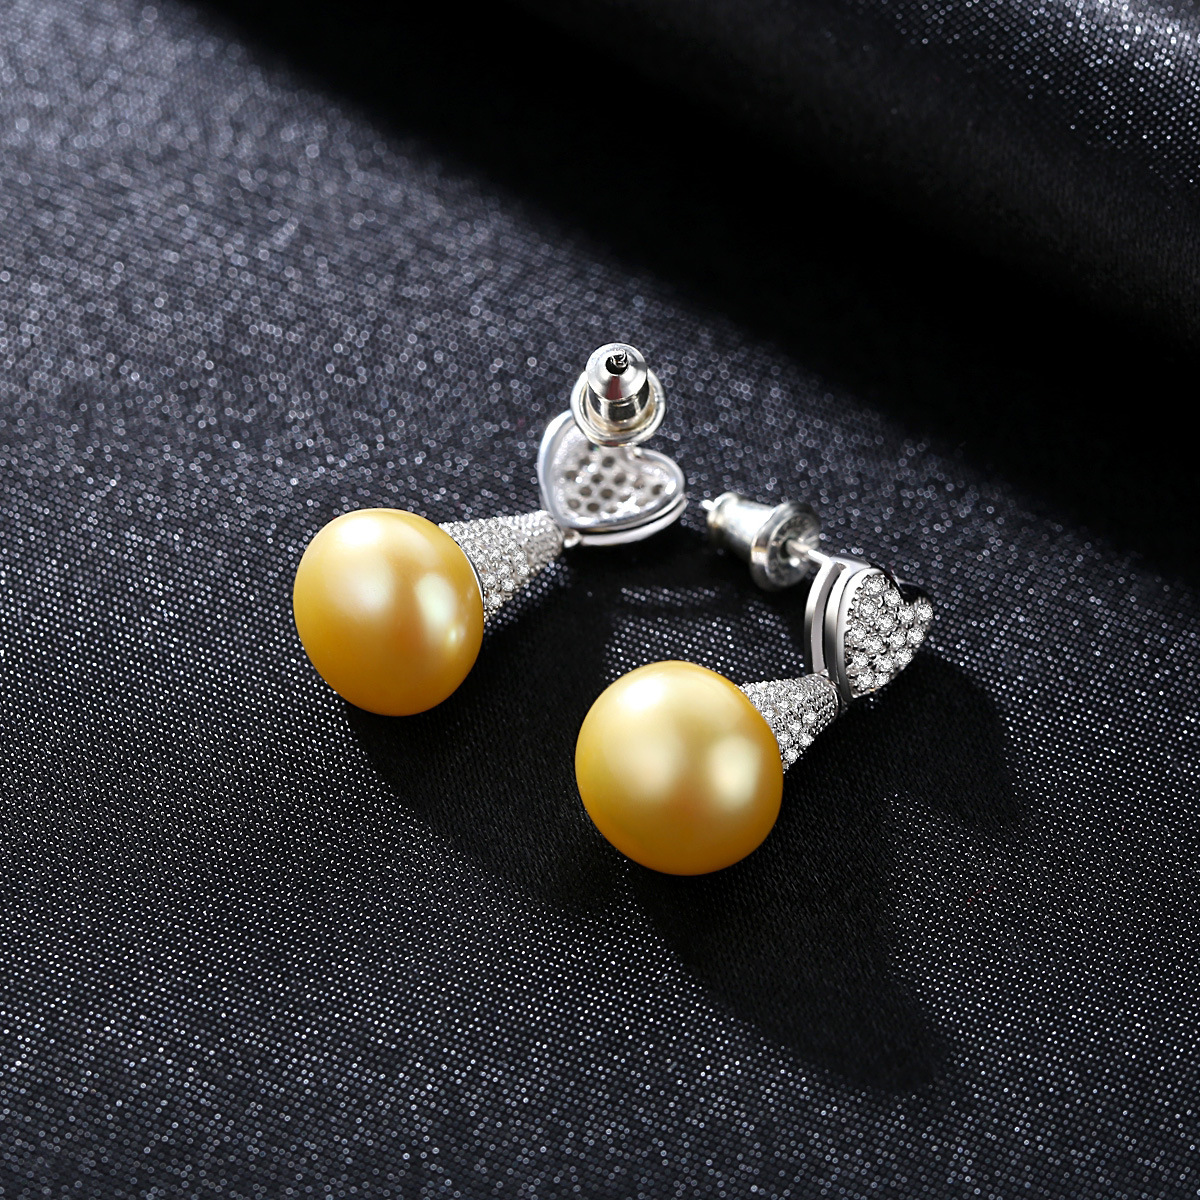 YUEYIN Sterling Silver Earring 11 12mm Pearl Earrings Stud Earrings Cute Sweet Heart Bride Jewelry Korean High Quality New in Earrings from Jewelry Accessories